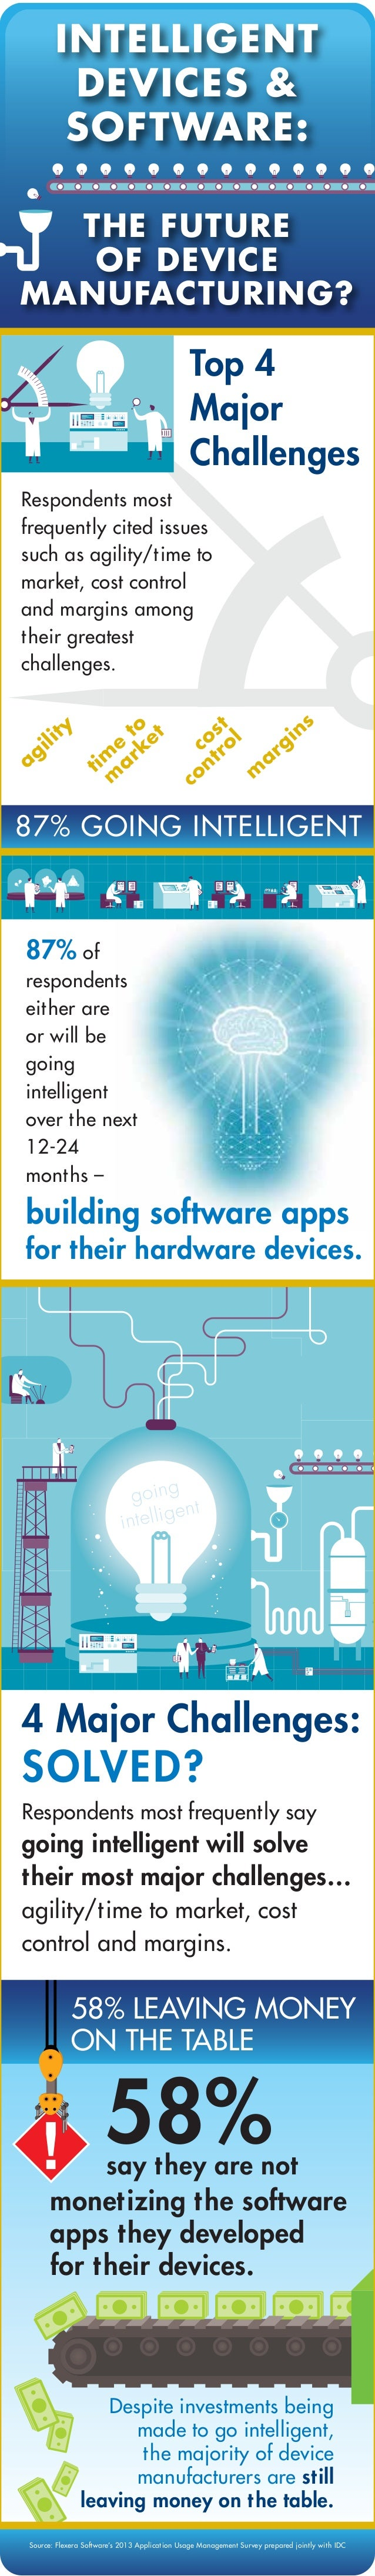 Intelligent Devices and Software: The Future of Device Manufacturing? Infographic